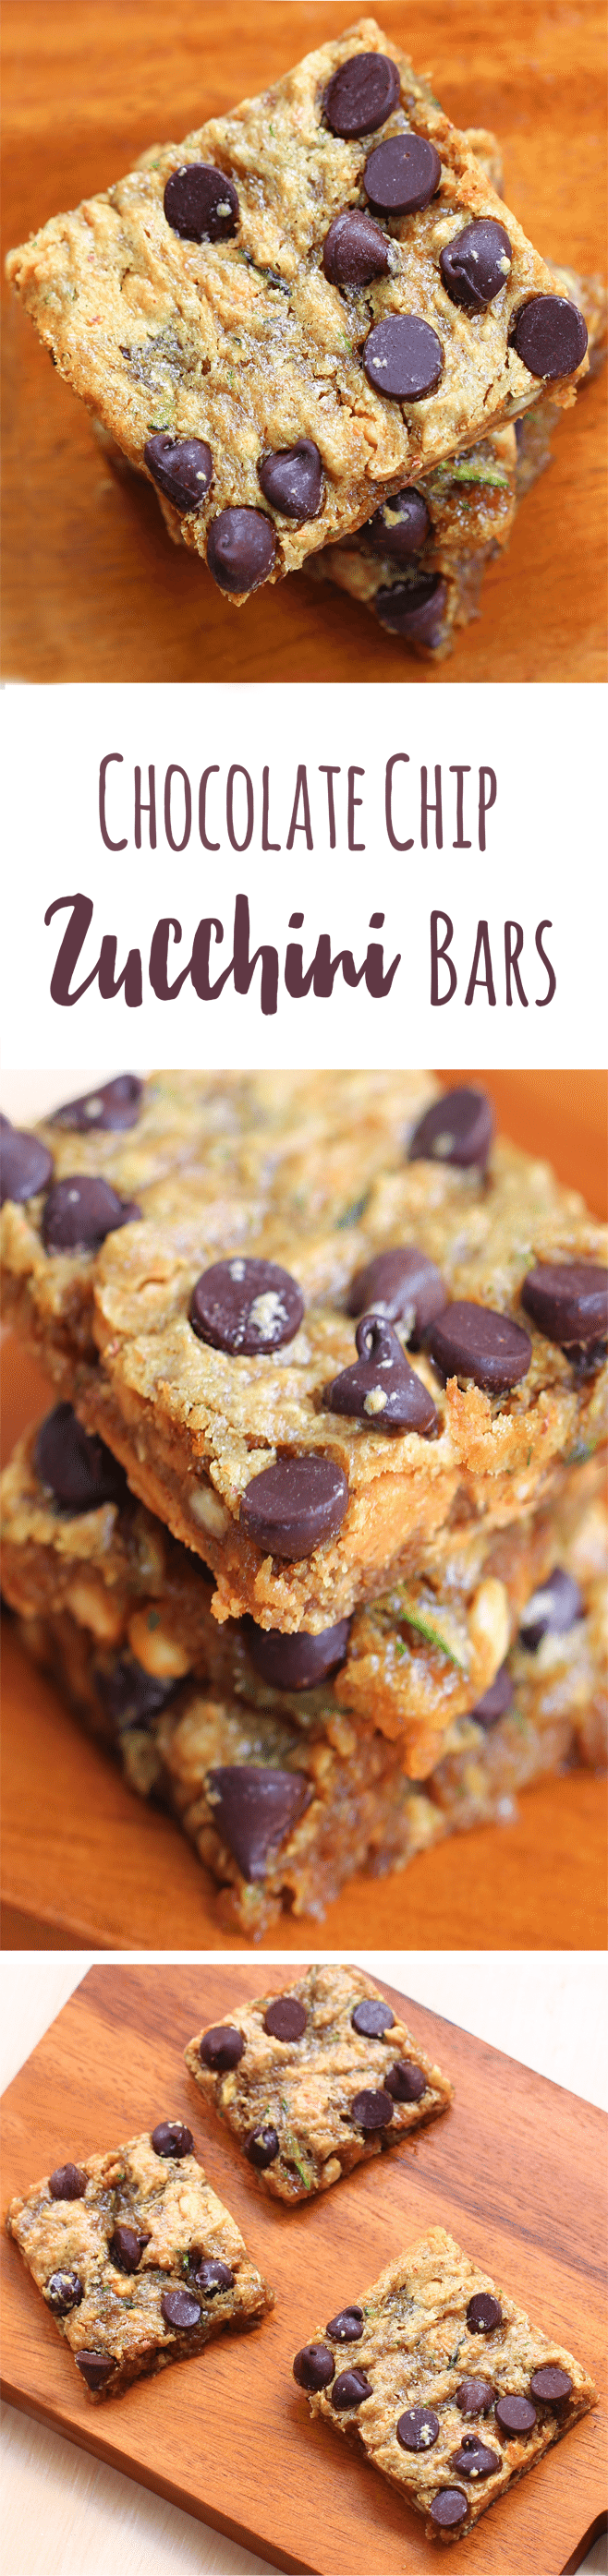 Chocolate Chip Zucchini Bars - Ingredients: 1 cup zucchini, 1/4 cup chocolate chips, 2 tsp vanilla, 1/2 tsp baking soda, 1 tbsp... Full recipe: https://chocolatecoveredkatie.com/2014/11/03/chocolate-chip-zucchini-bars/ @choccoveredkt